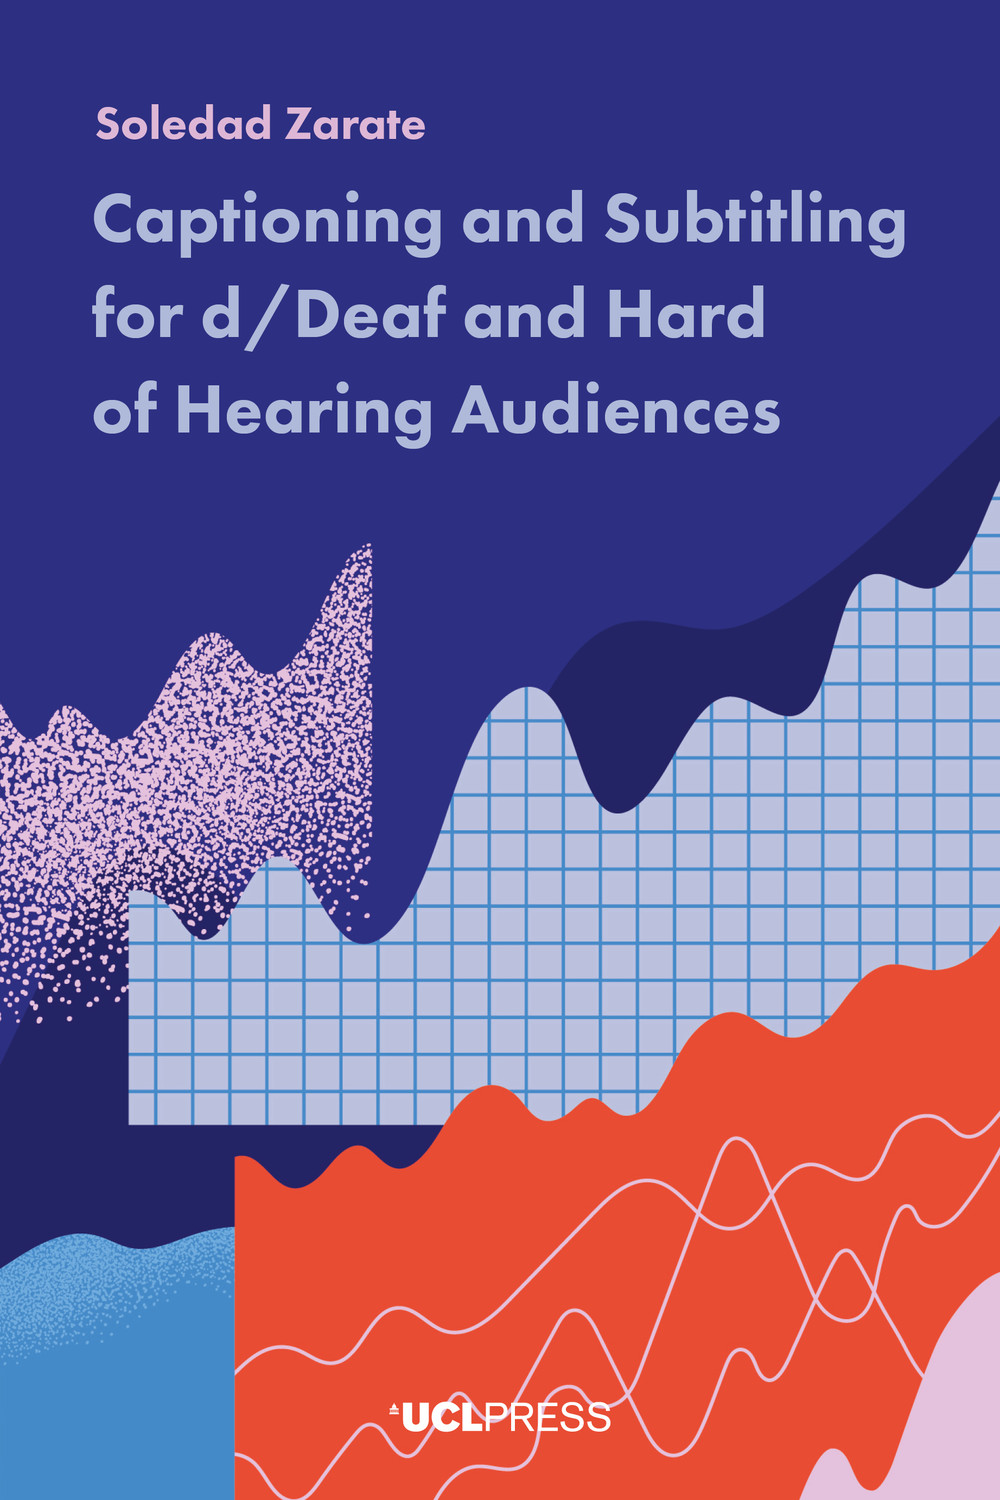 Captioning and Subtitling for d/Deaf and Hard of Hearing Audiences